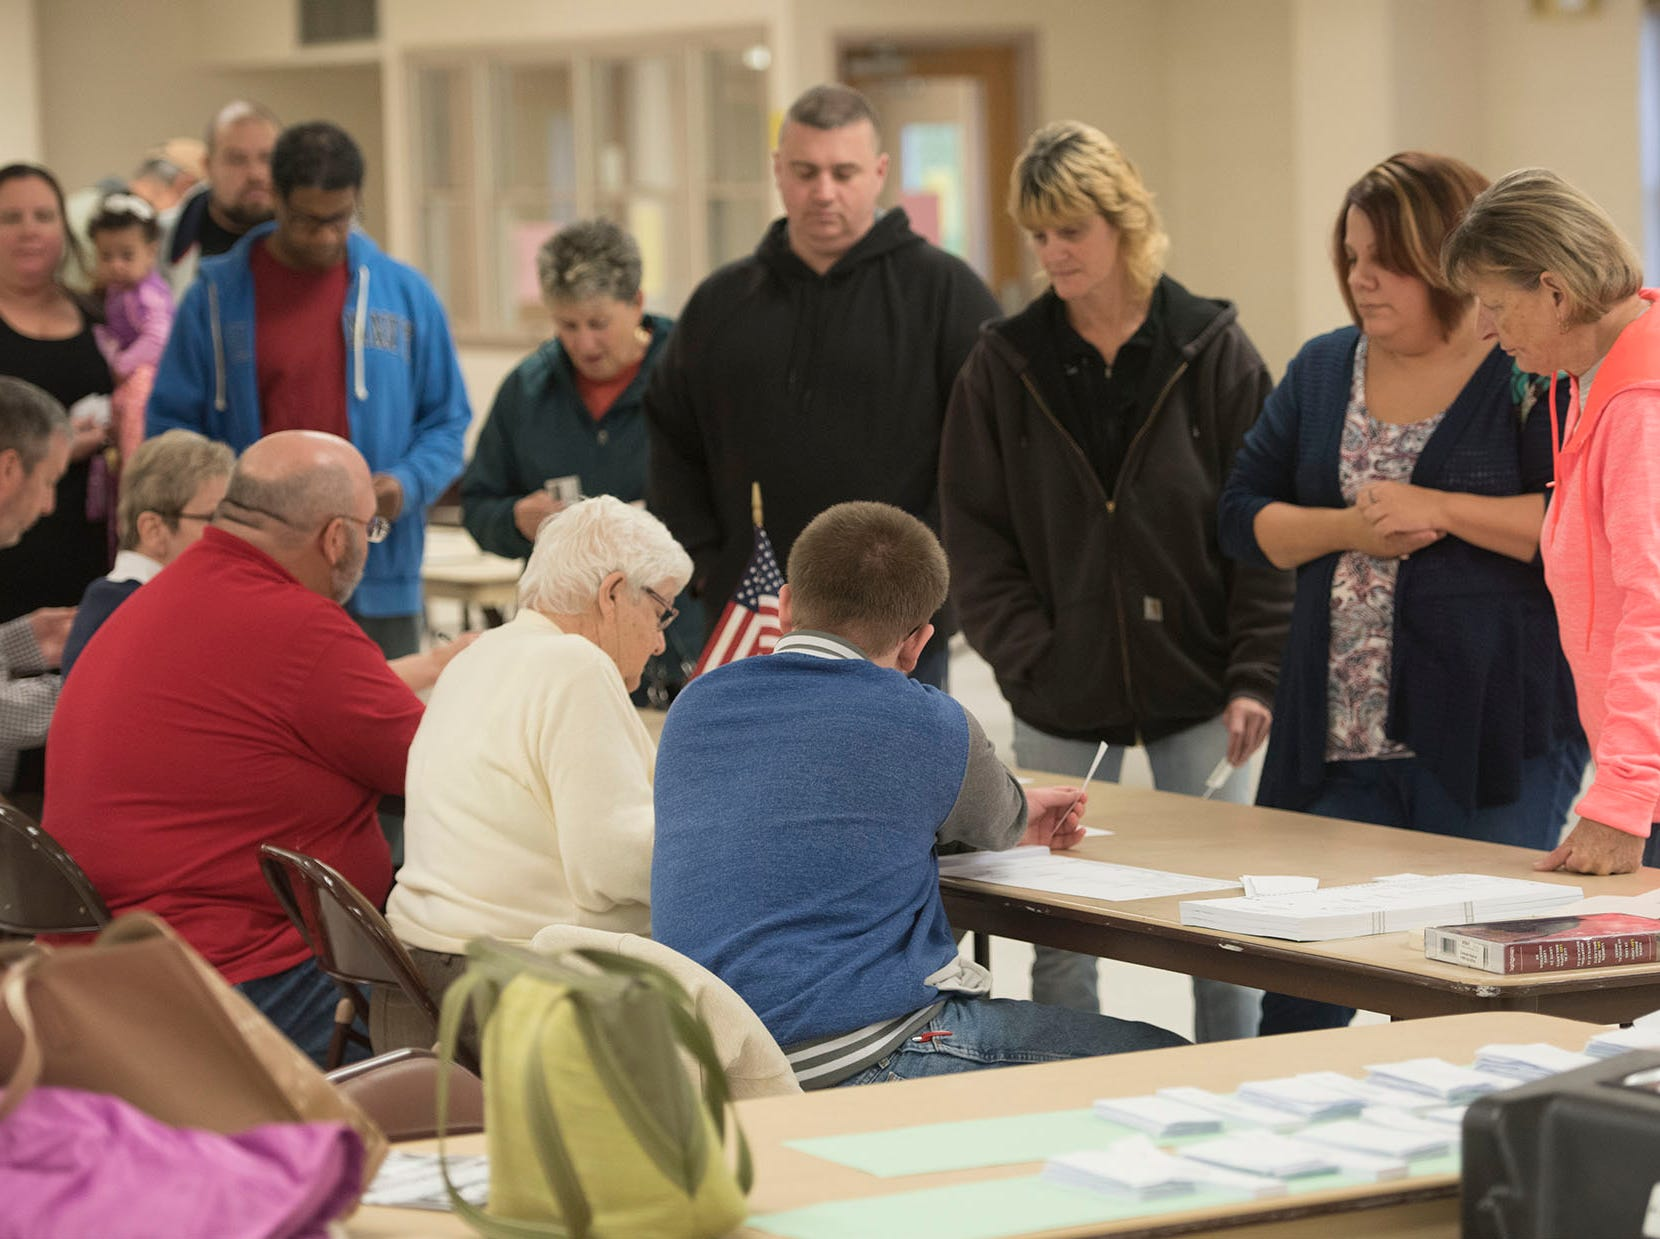 Registered voters lineup to get their ballots. Voters are casting their ballots on Election Day 2018 at Eugene C. Clarke Community Center, Chambersburg.